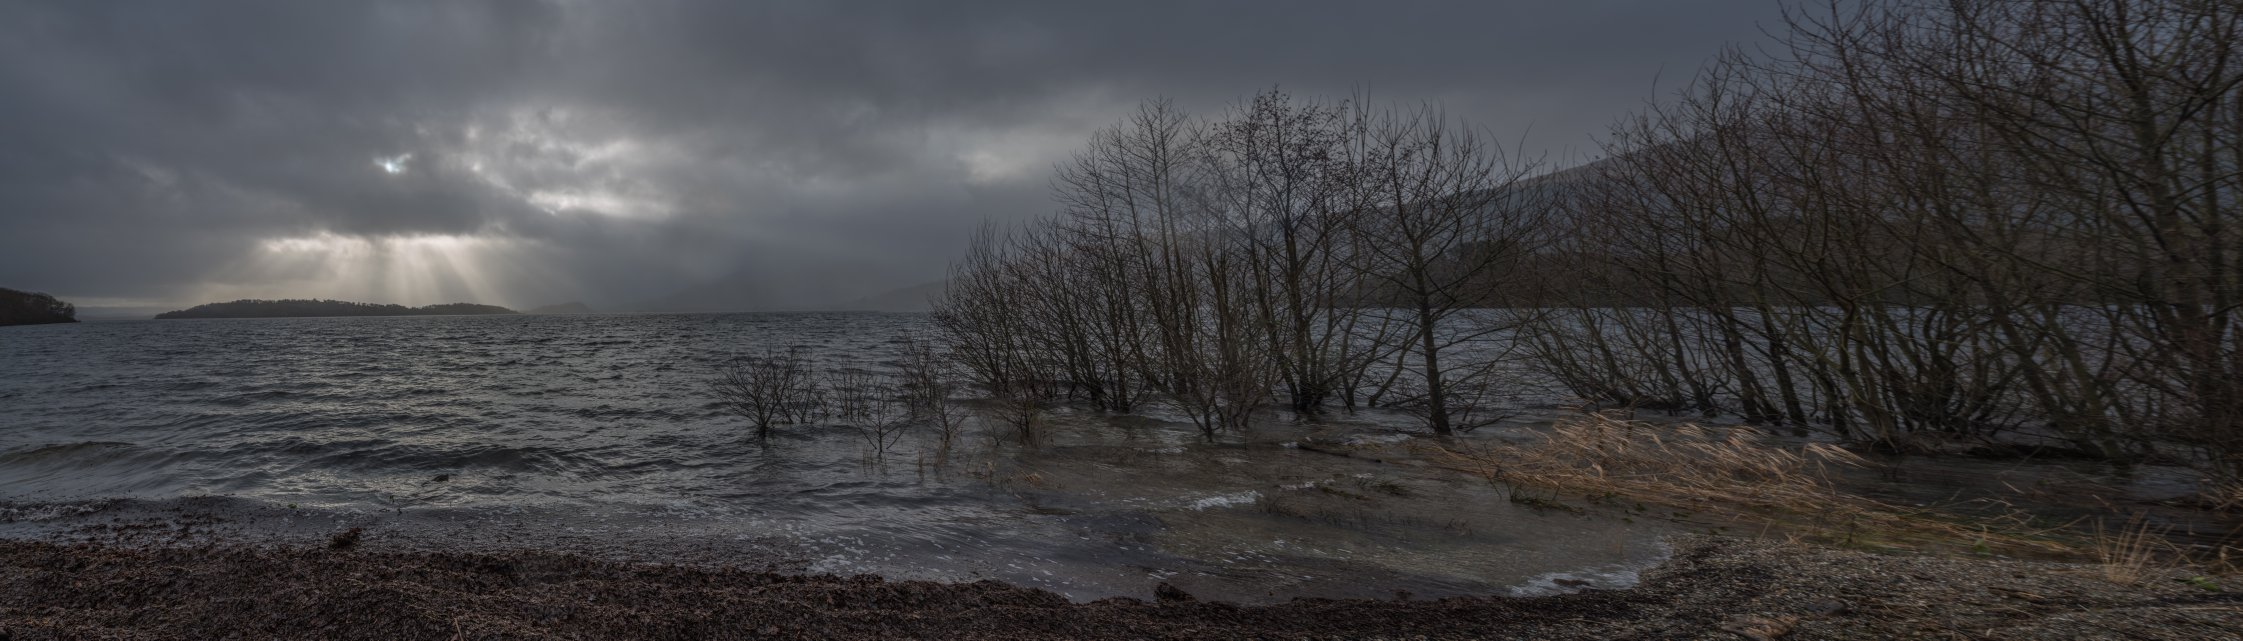 STORMY WEATHER OUT THERE ON LOCH LOMOND